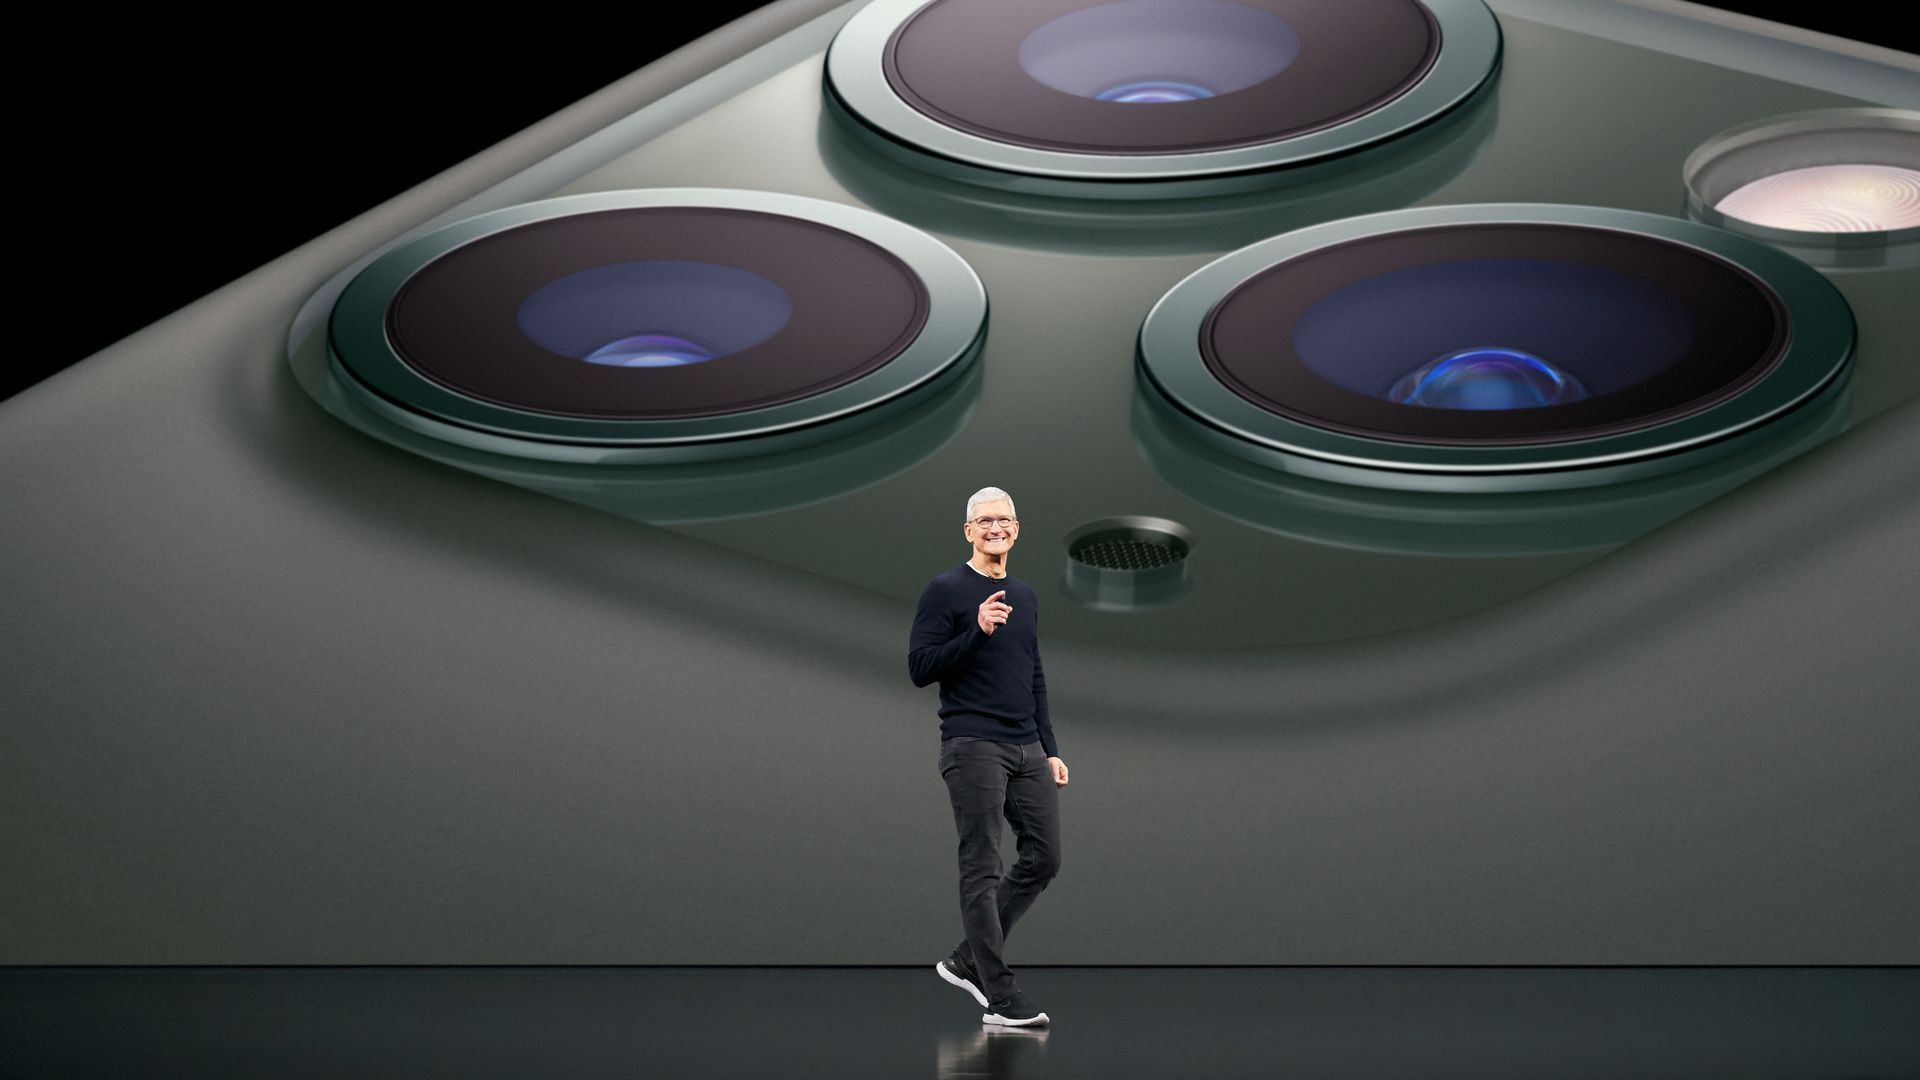 Apple CEO Tim Cook at the launch for the iPhone 11